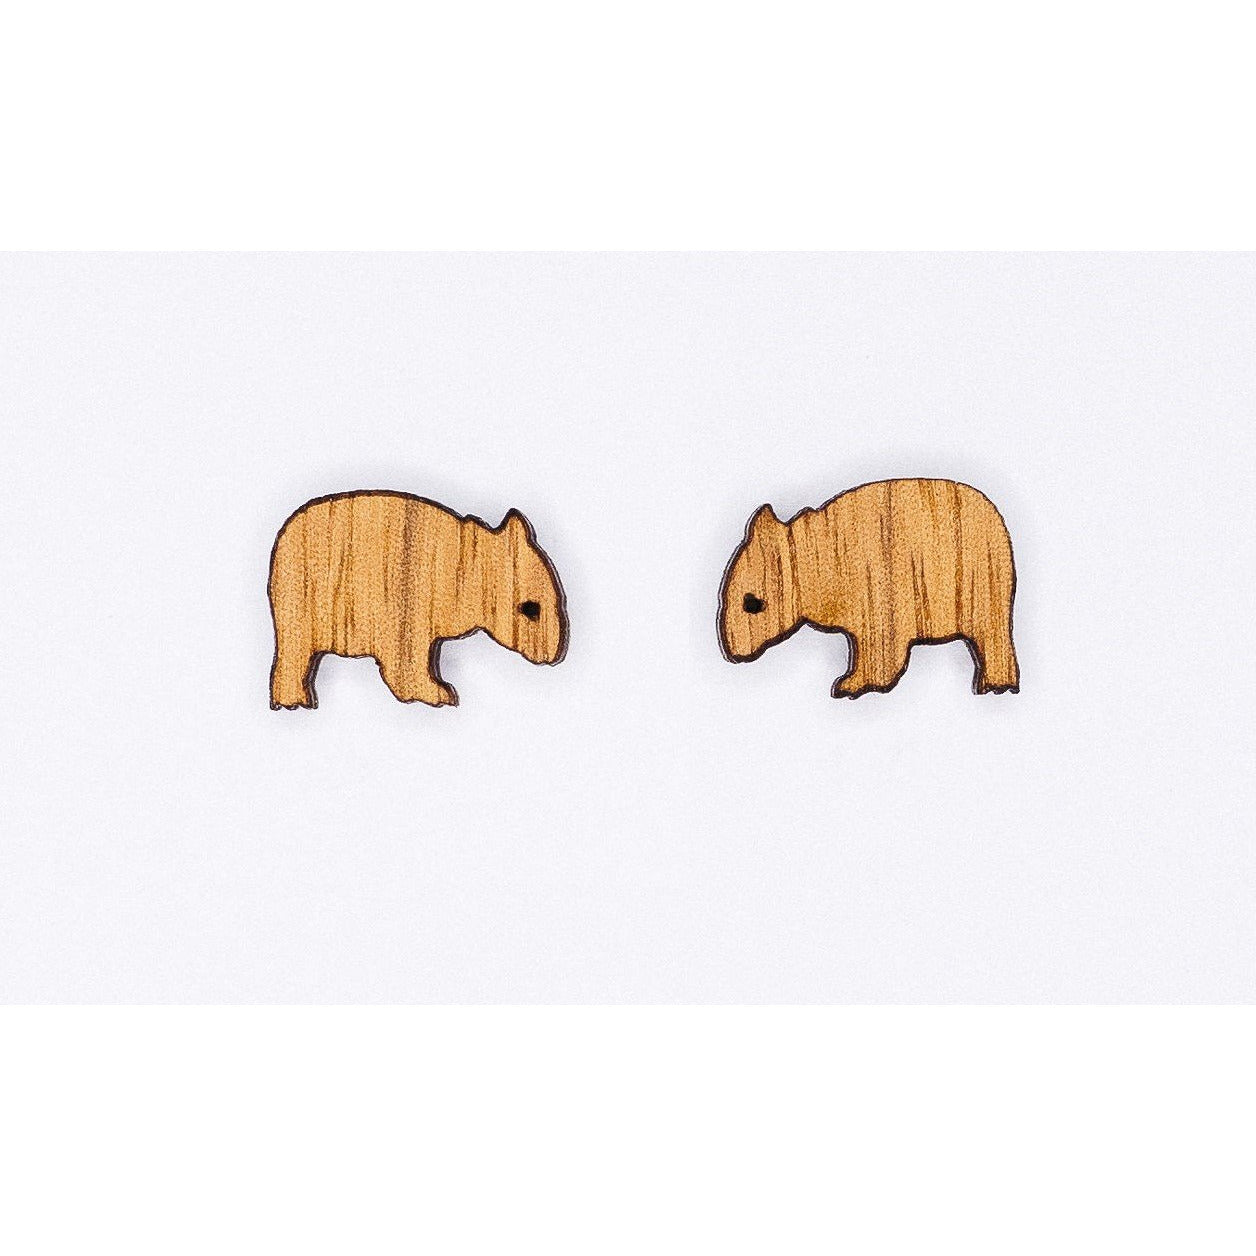 WOMBAT Earrings gift made from native Australian timber